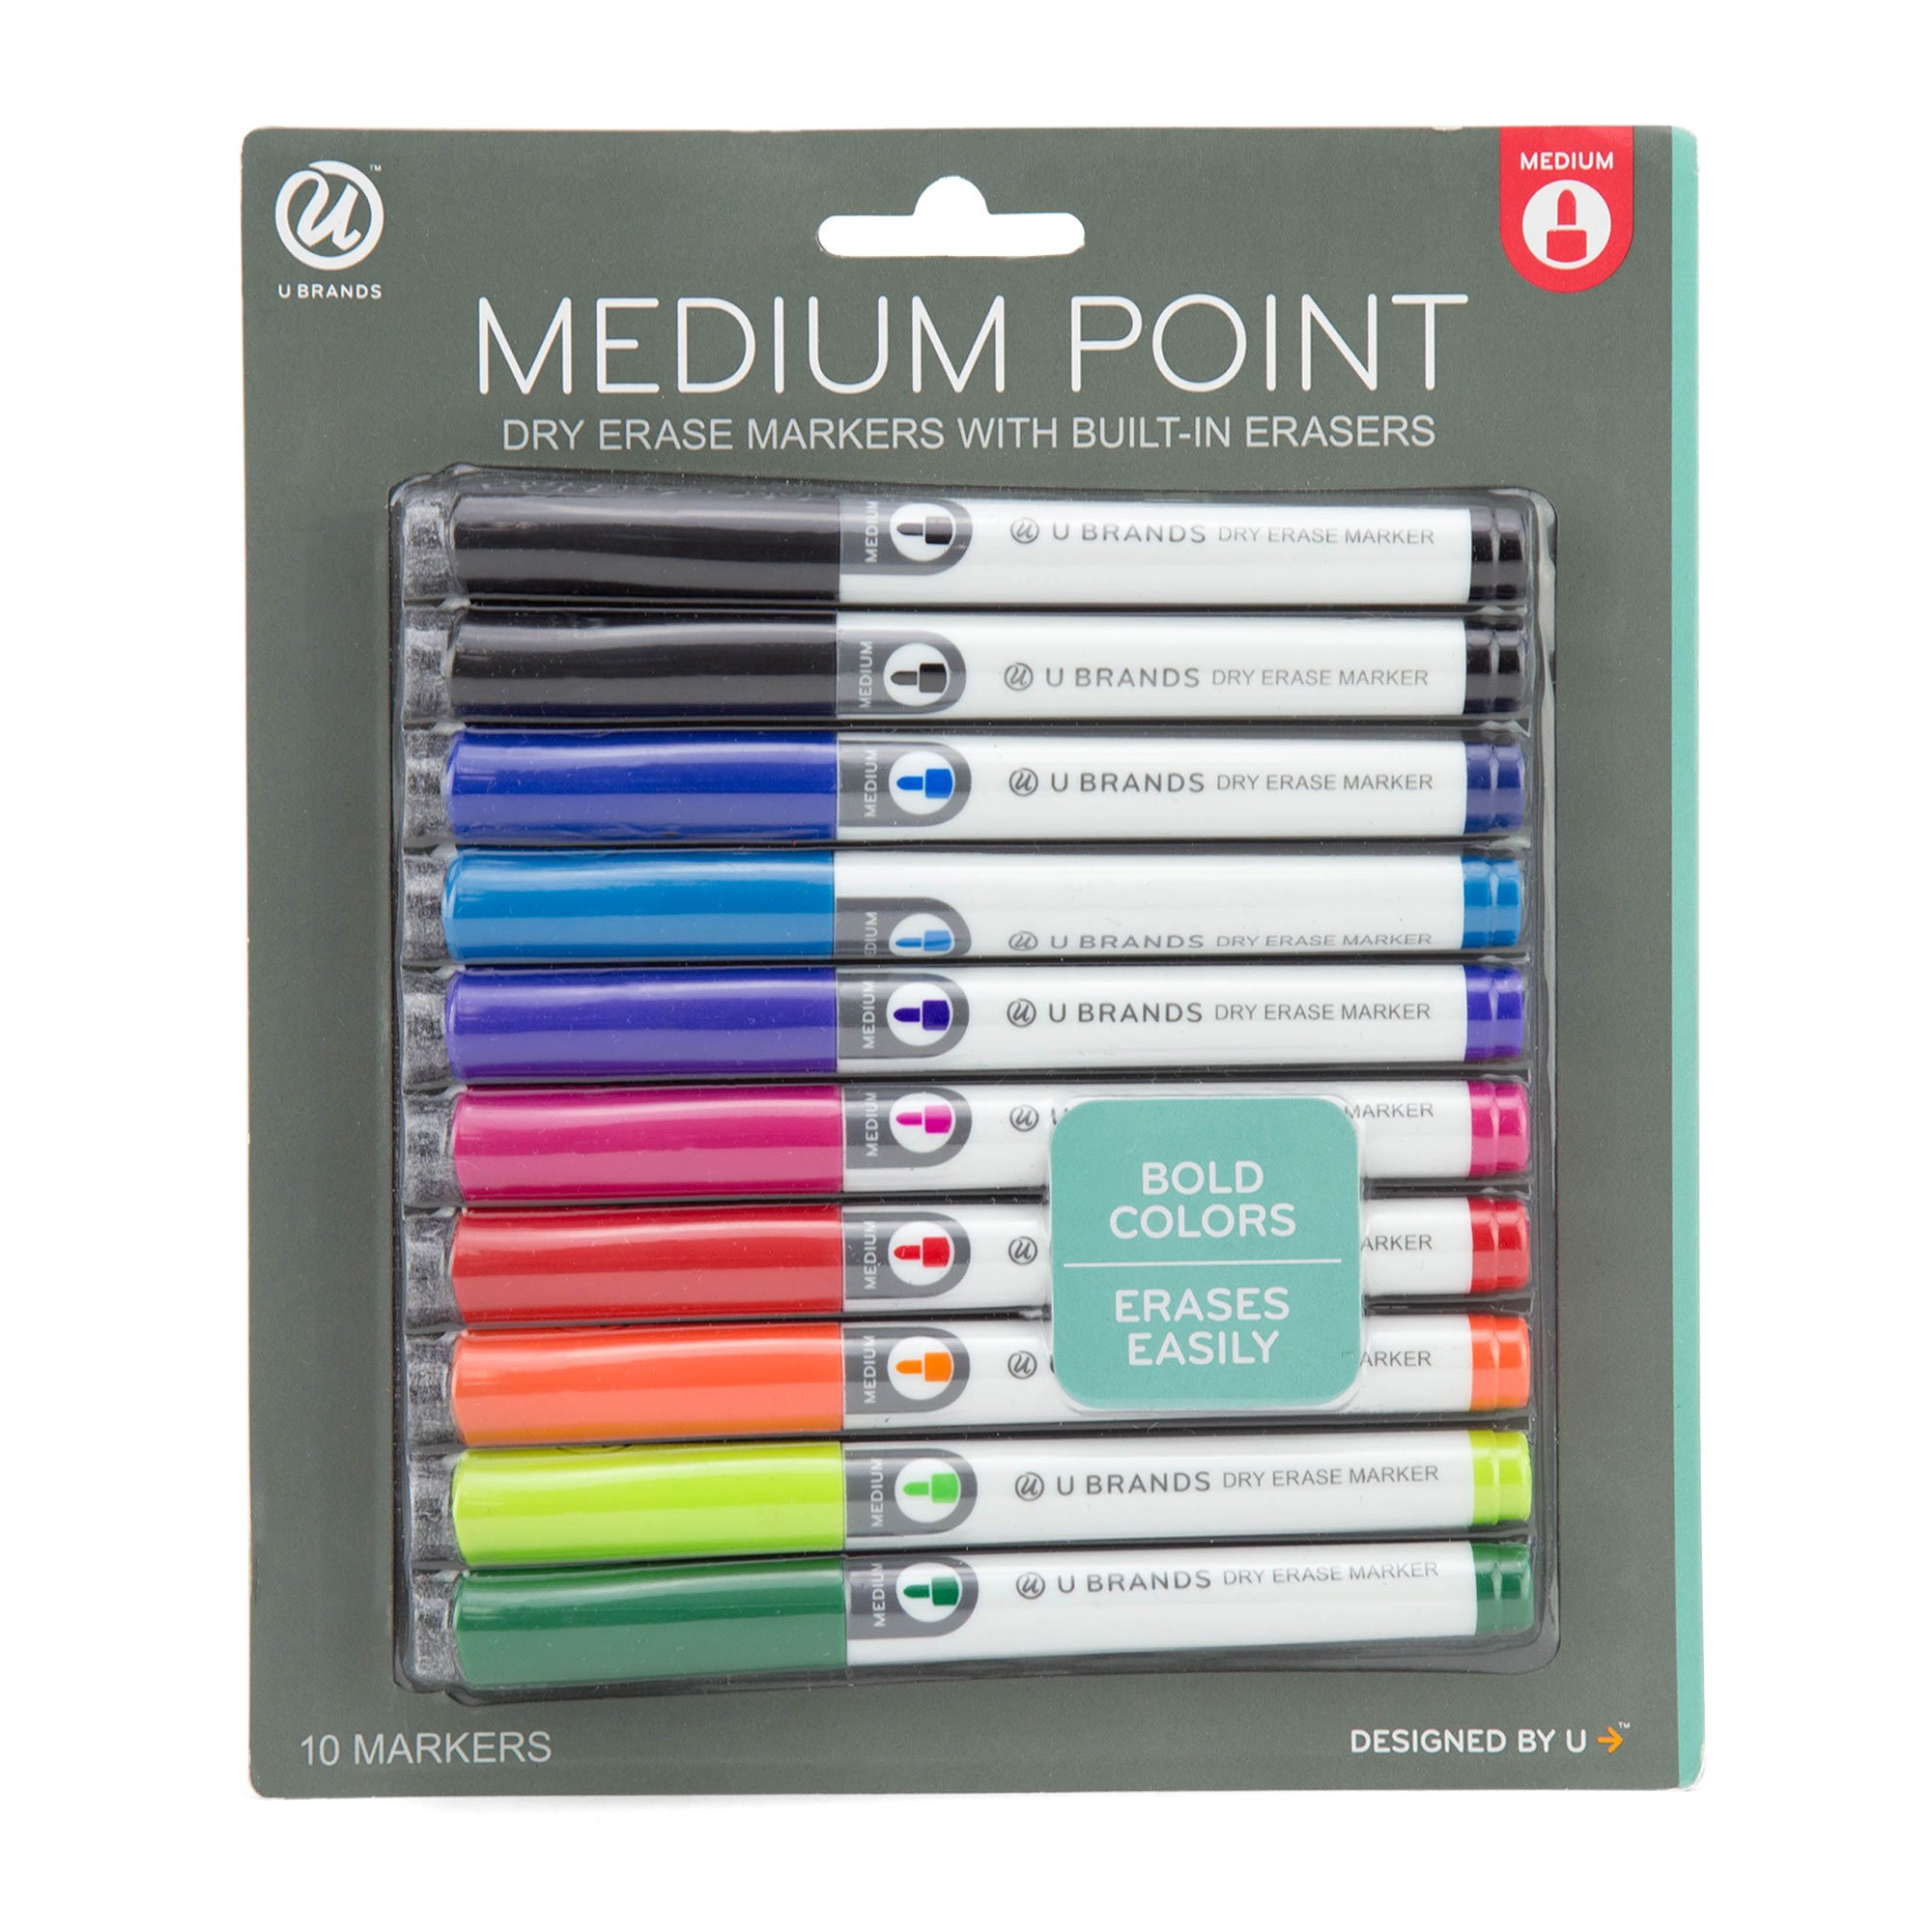 U Brands Low Odor Dry Erase Markers, Medium Point, Assorted Colors, 10-Count by U Brands (Image #1)